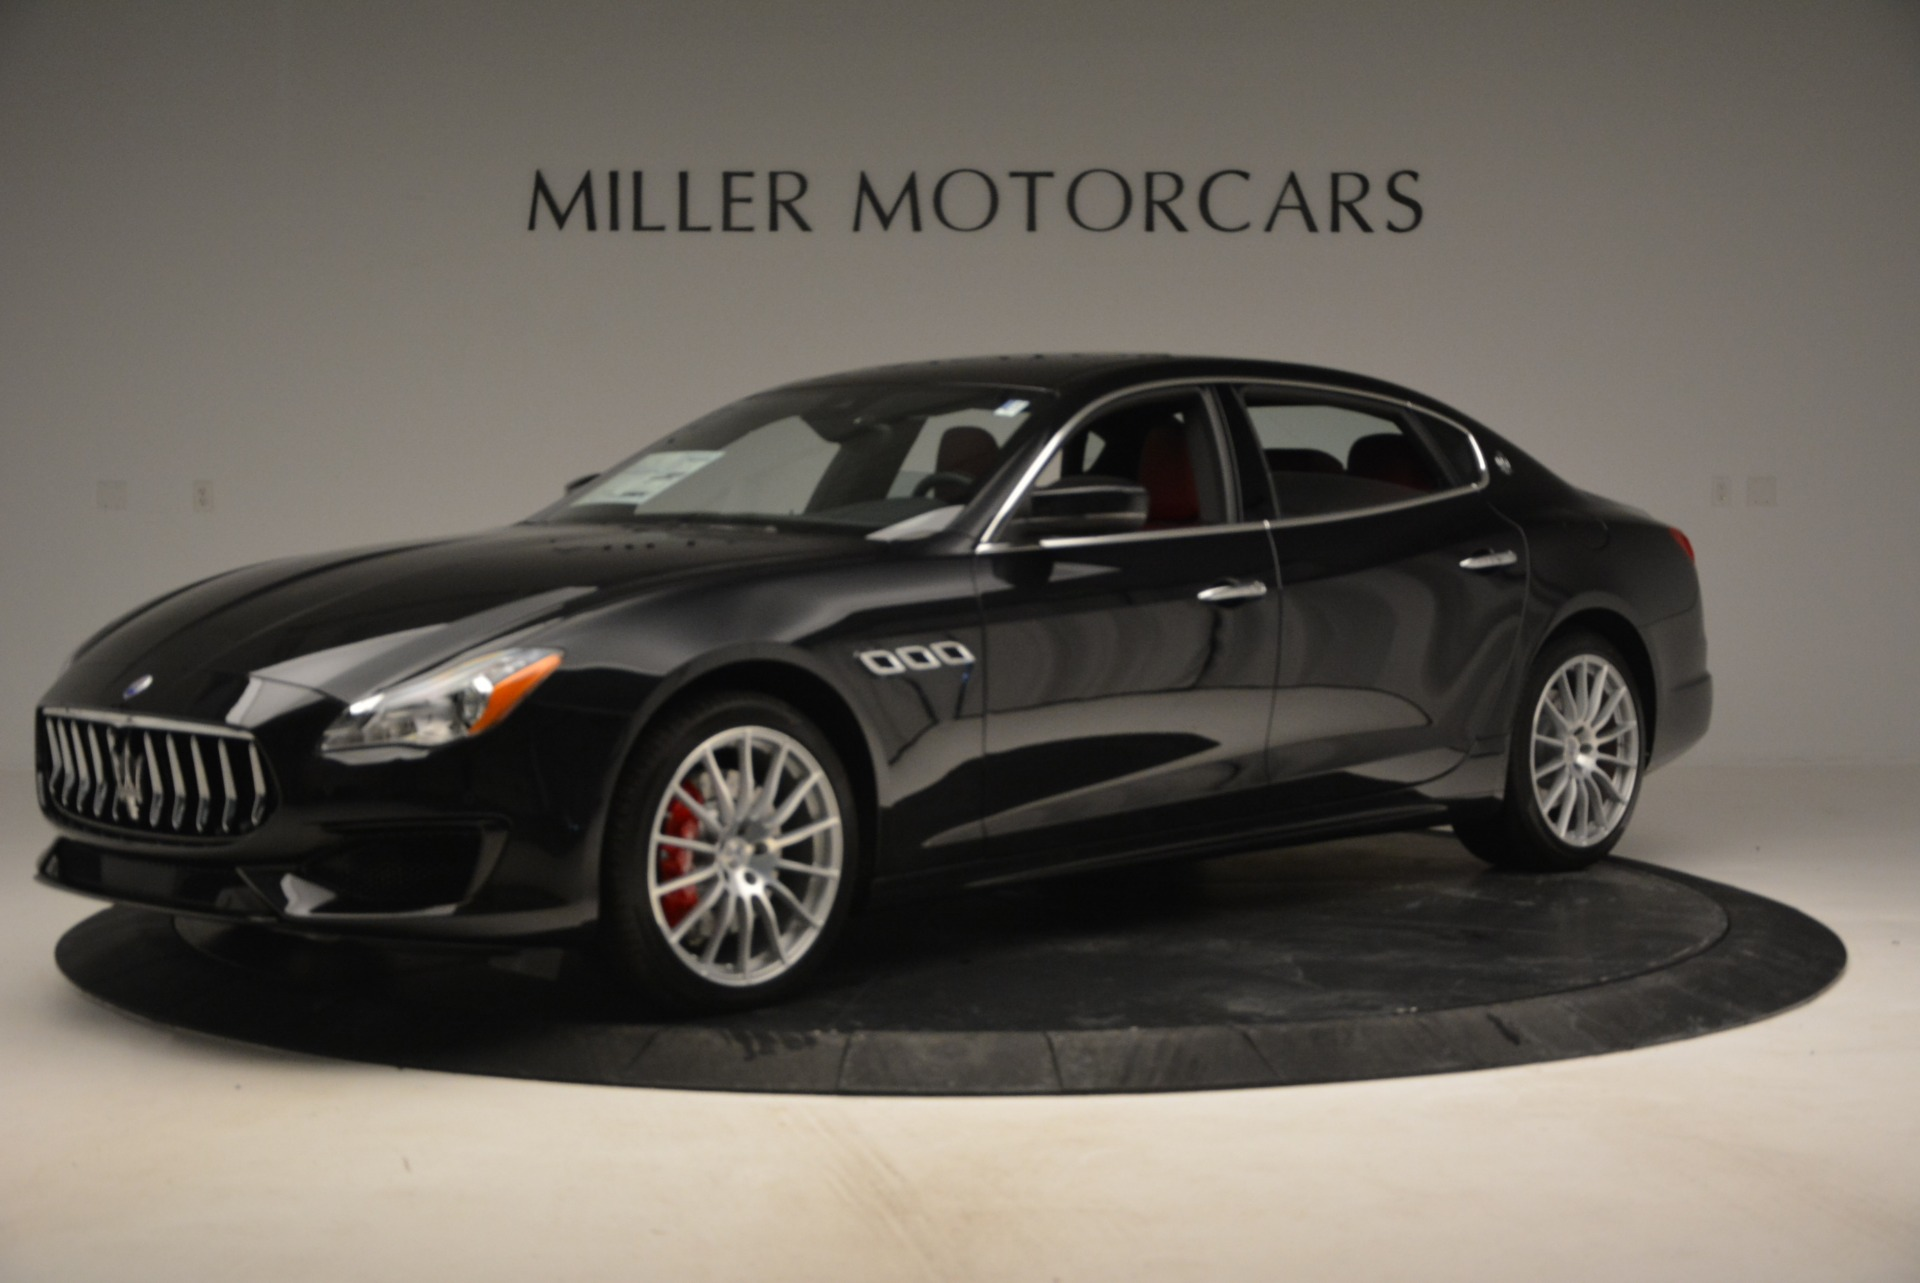 New 2017 Maserati Quattroporte S Q4 GranSport For Sale In Westport, CT 790_p2